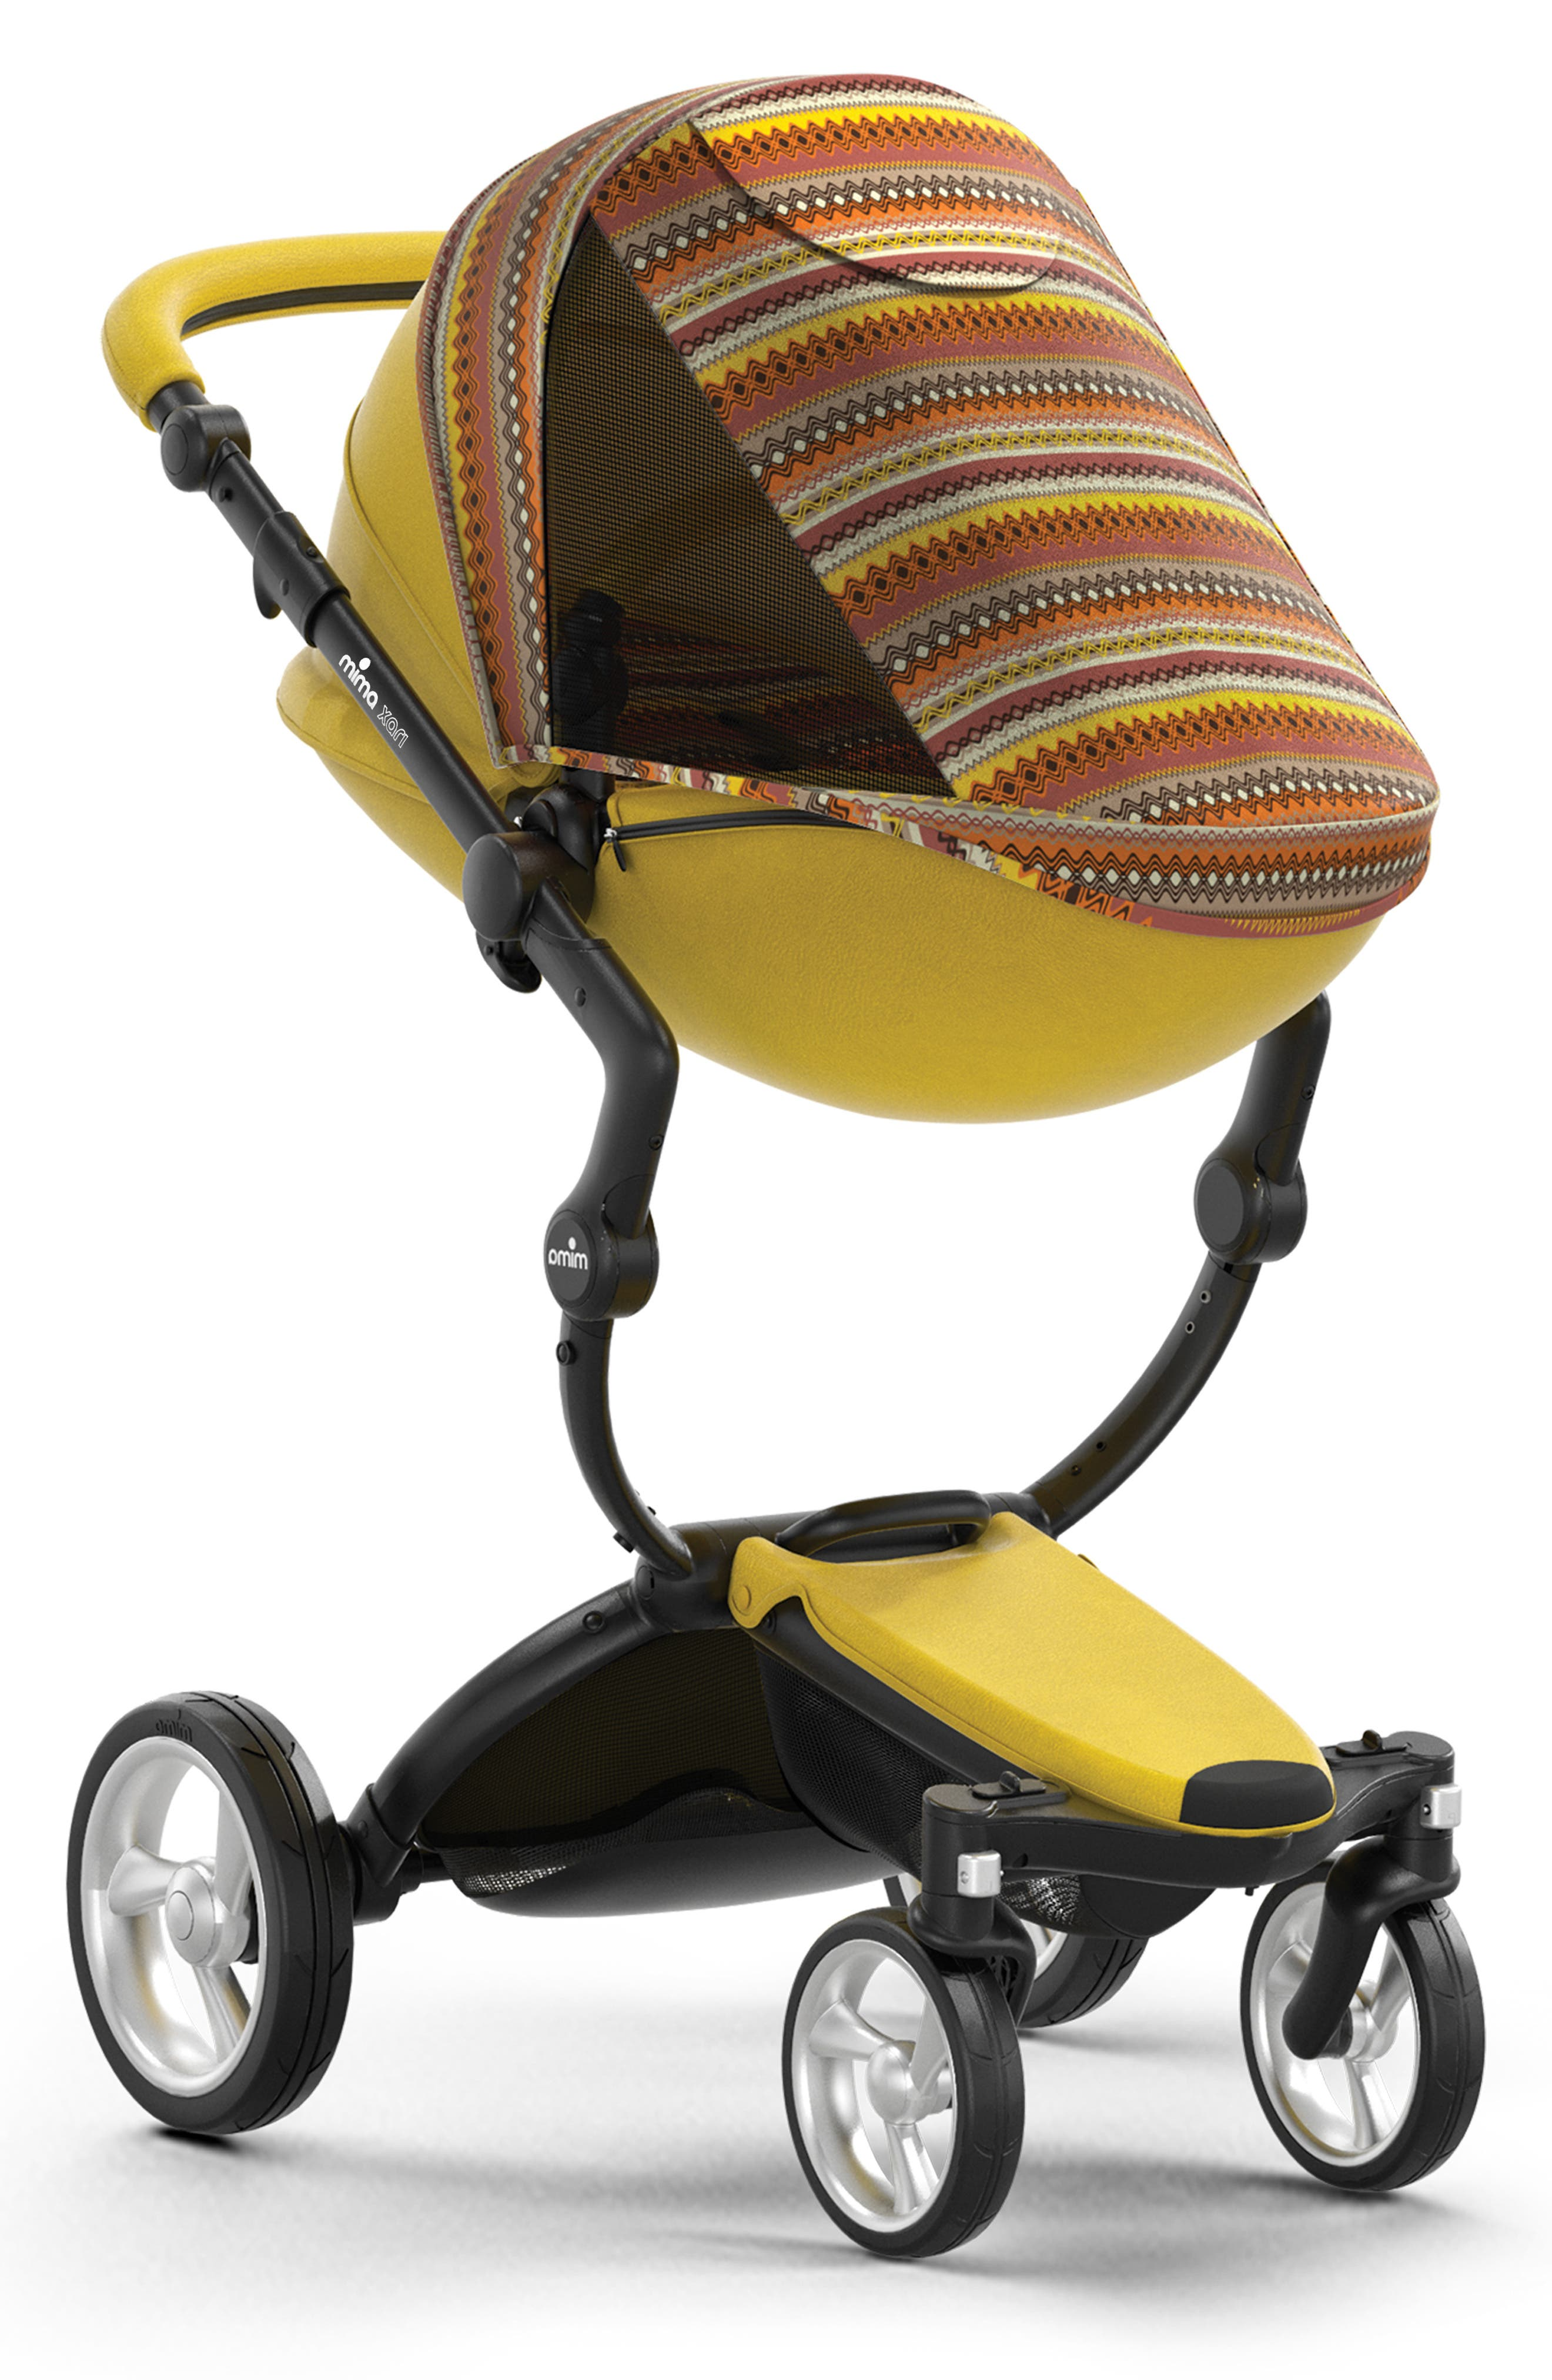 Xari Special Edition Chassis Stroller with Seat, Carrycot & Accessories,                             Alternate thumbnail 4, color,                             SPECIAL EDITION YELLOW